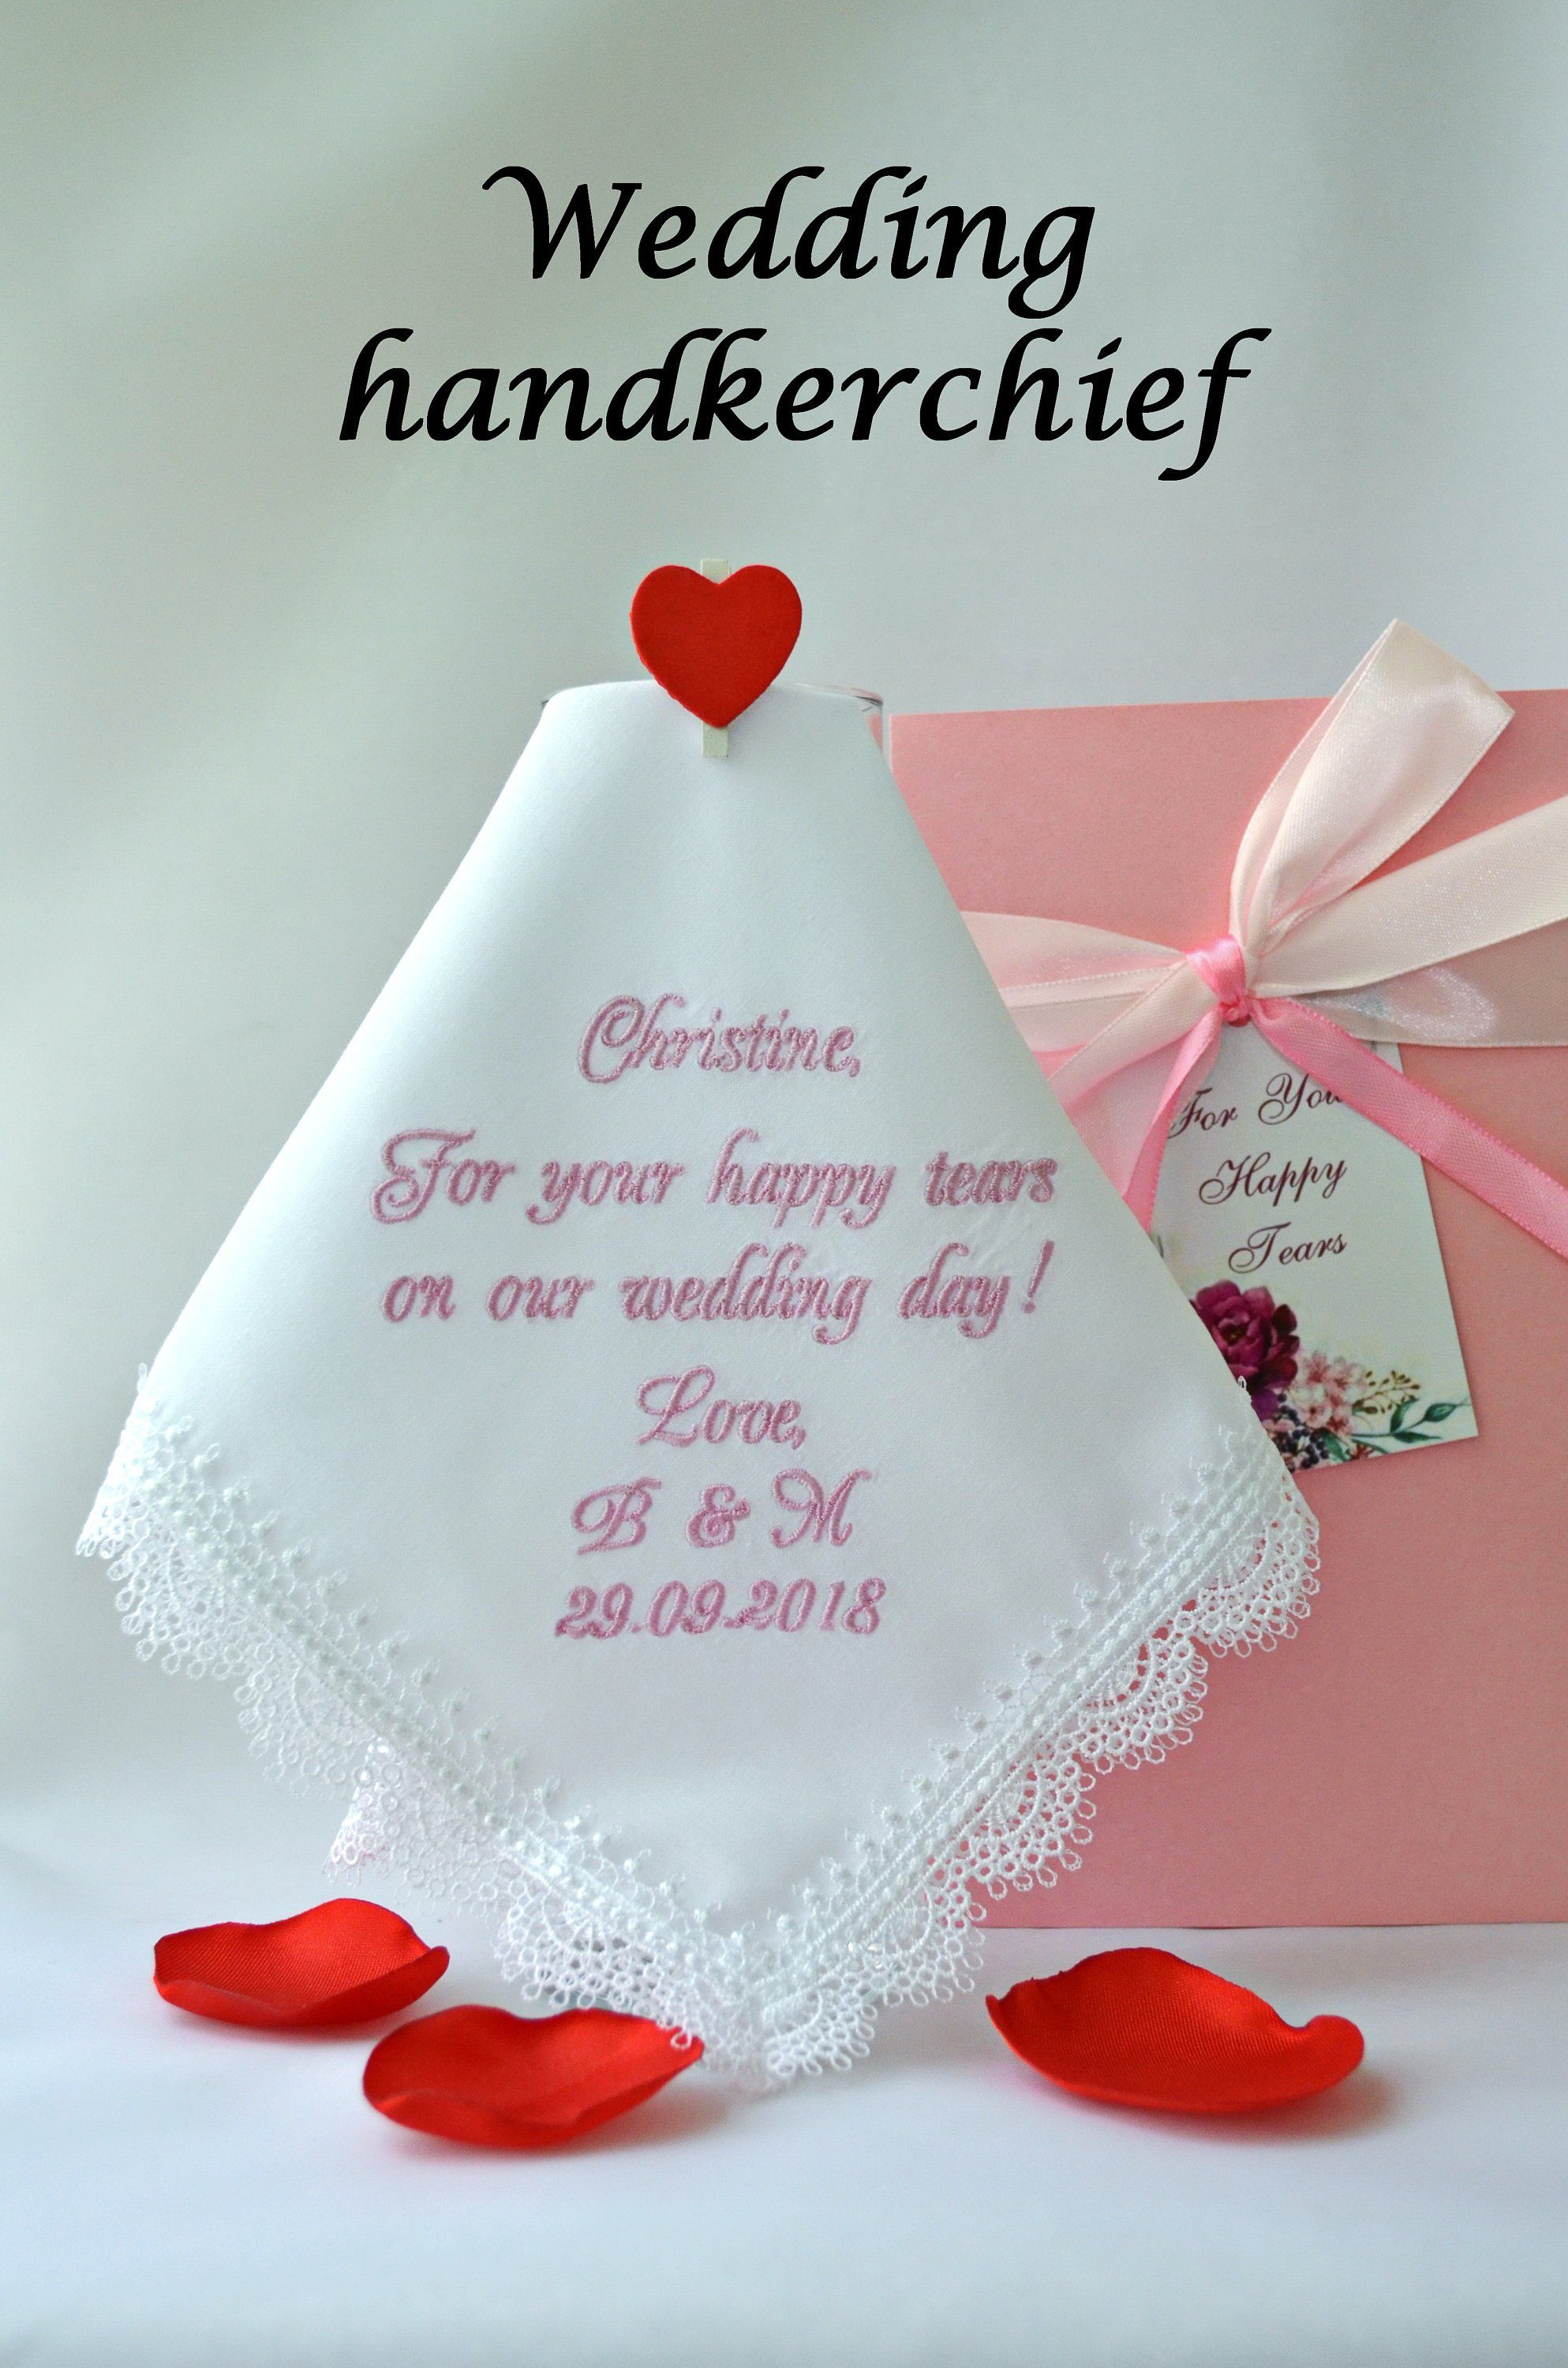 For your happy tears handkerchief for maid of honor mother